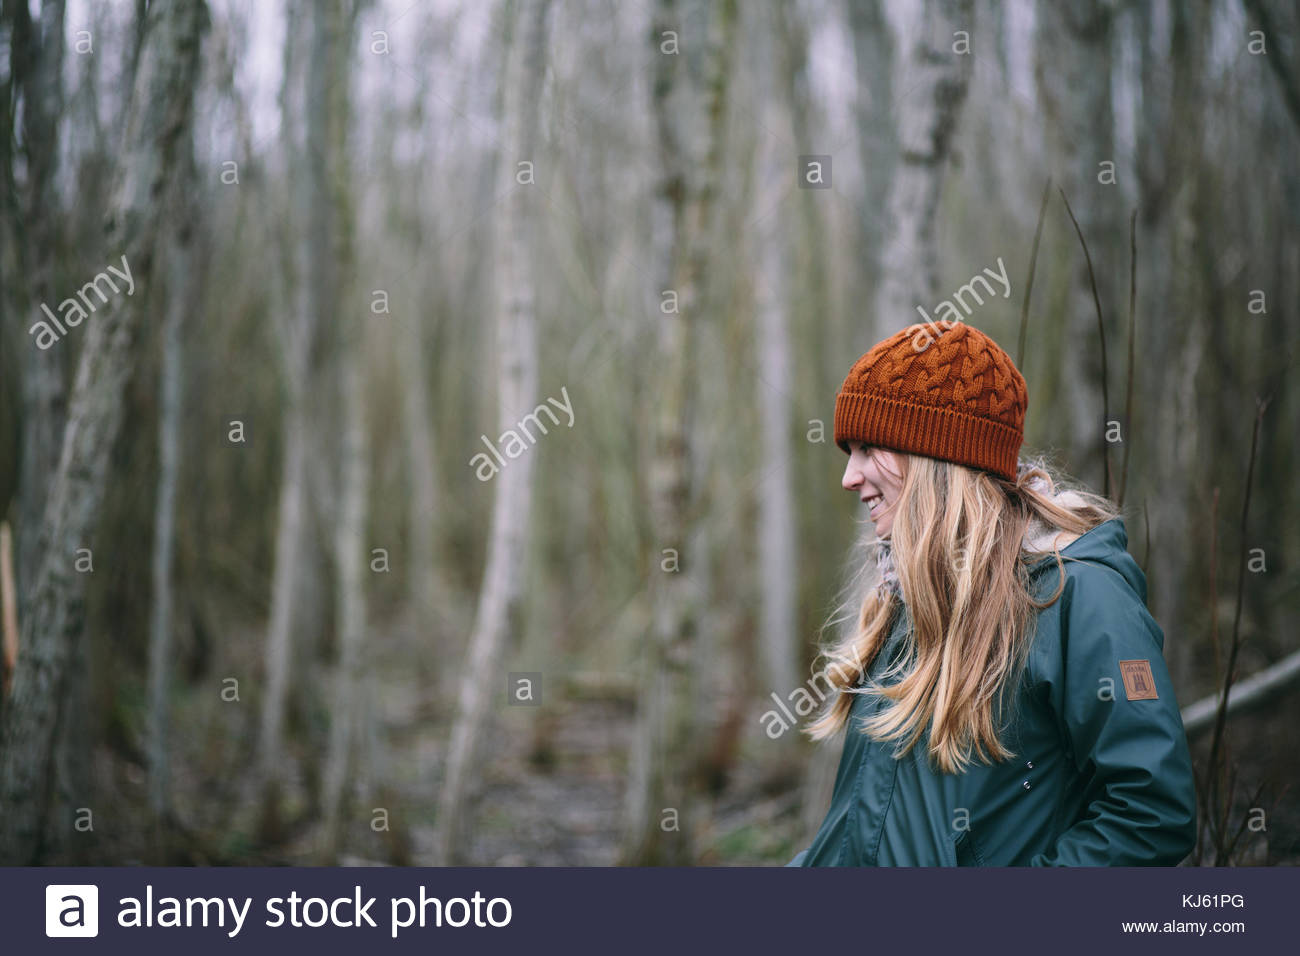 Blond girl with brown knitted hat in forest - Stock Image